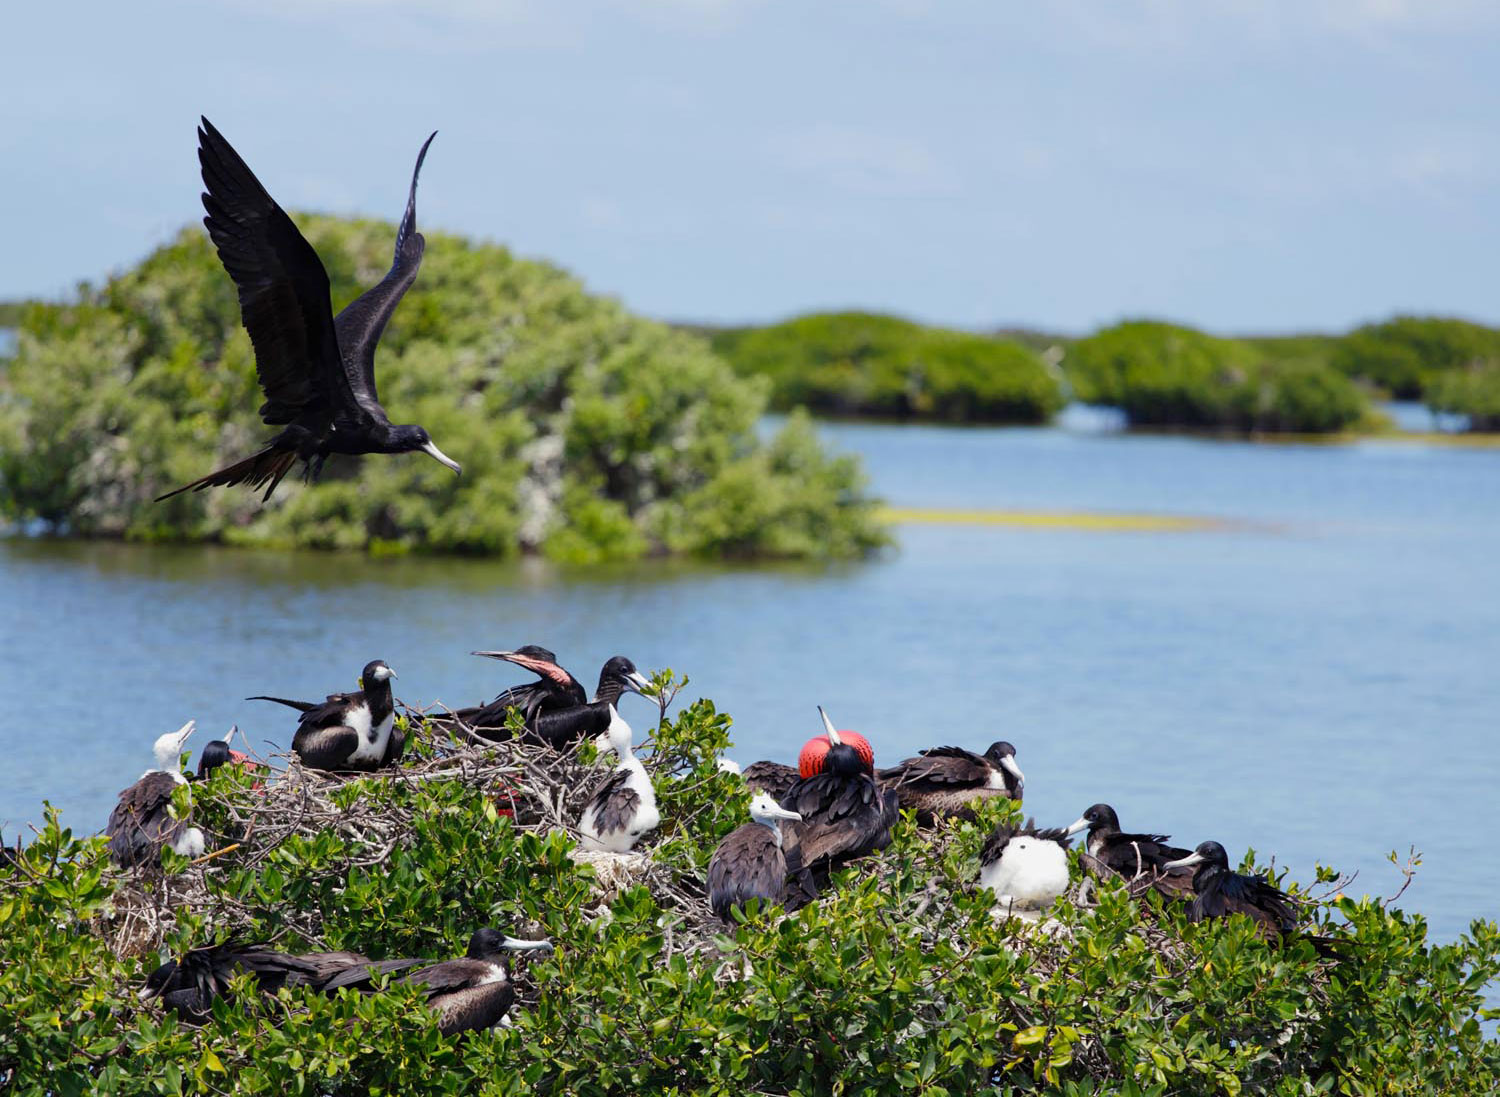 Barbuda's Codrington Lagoon is home to the world's largest colony of frigatebirds. Photo by Temmuzcan/iStockPhoto